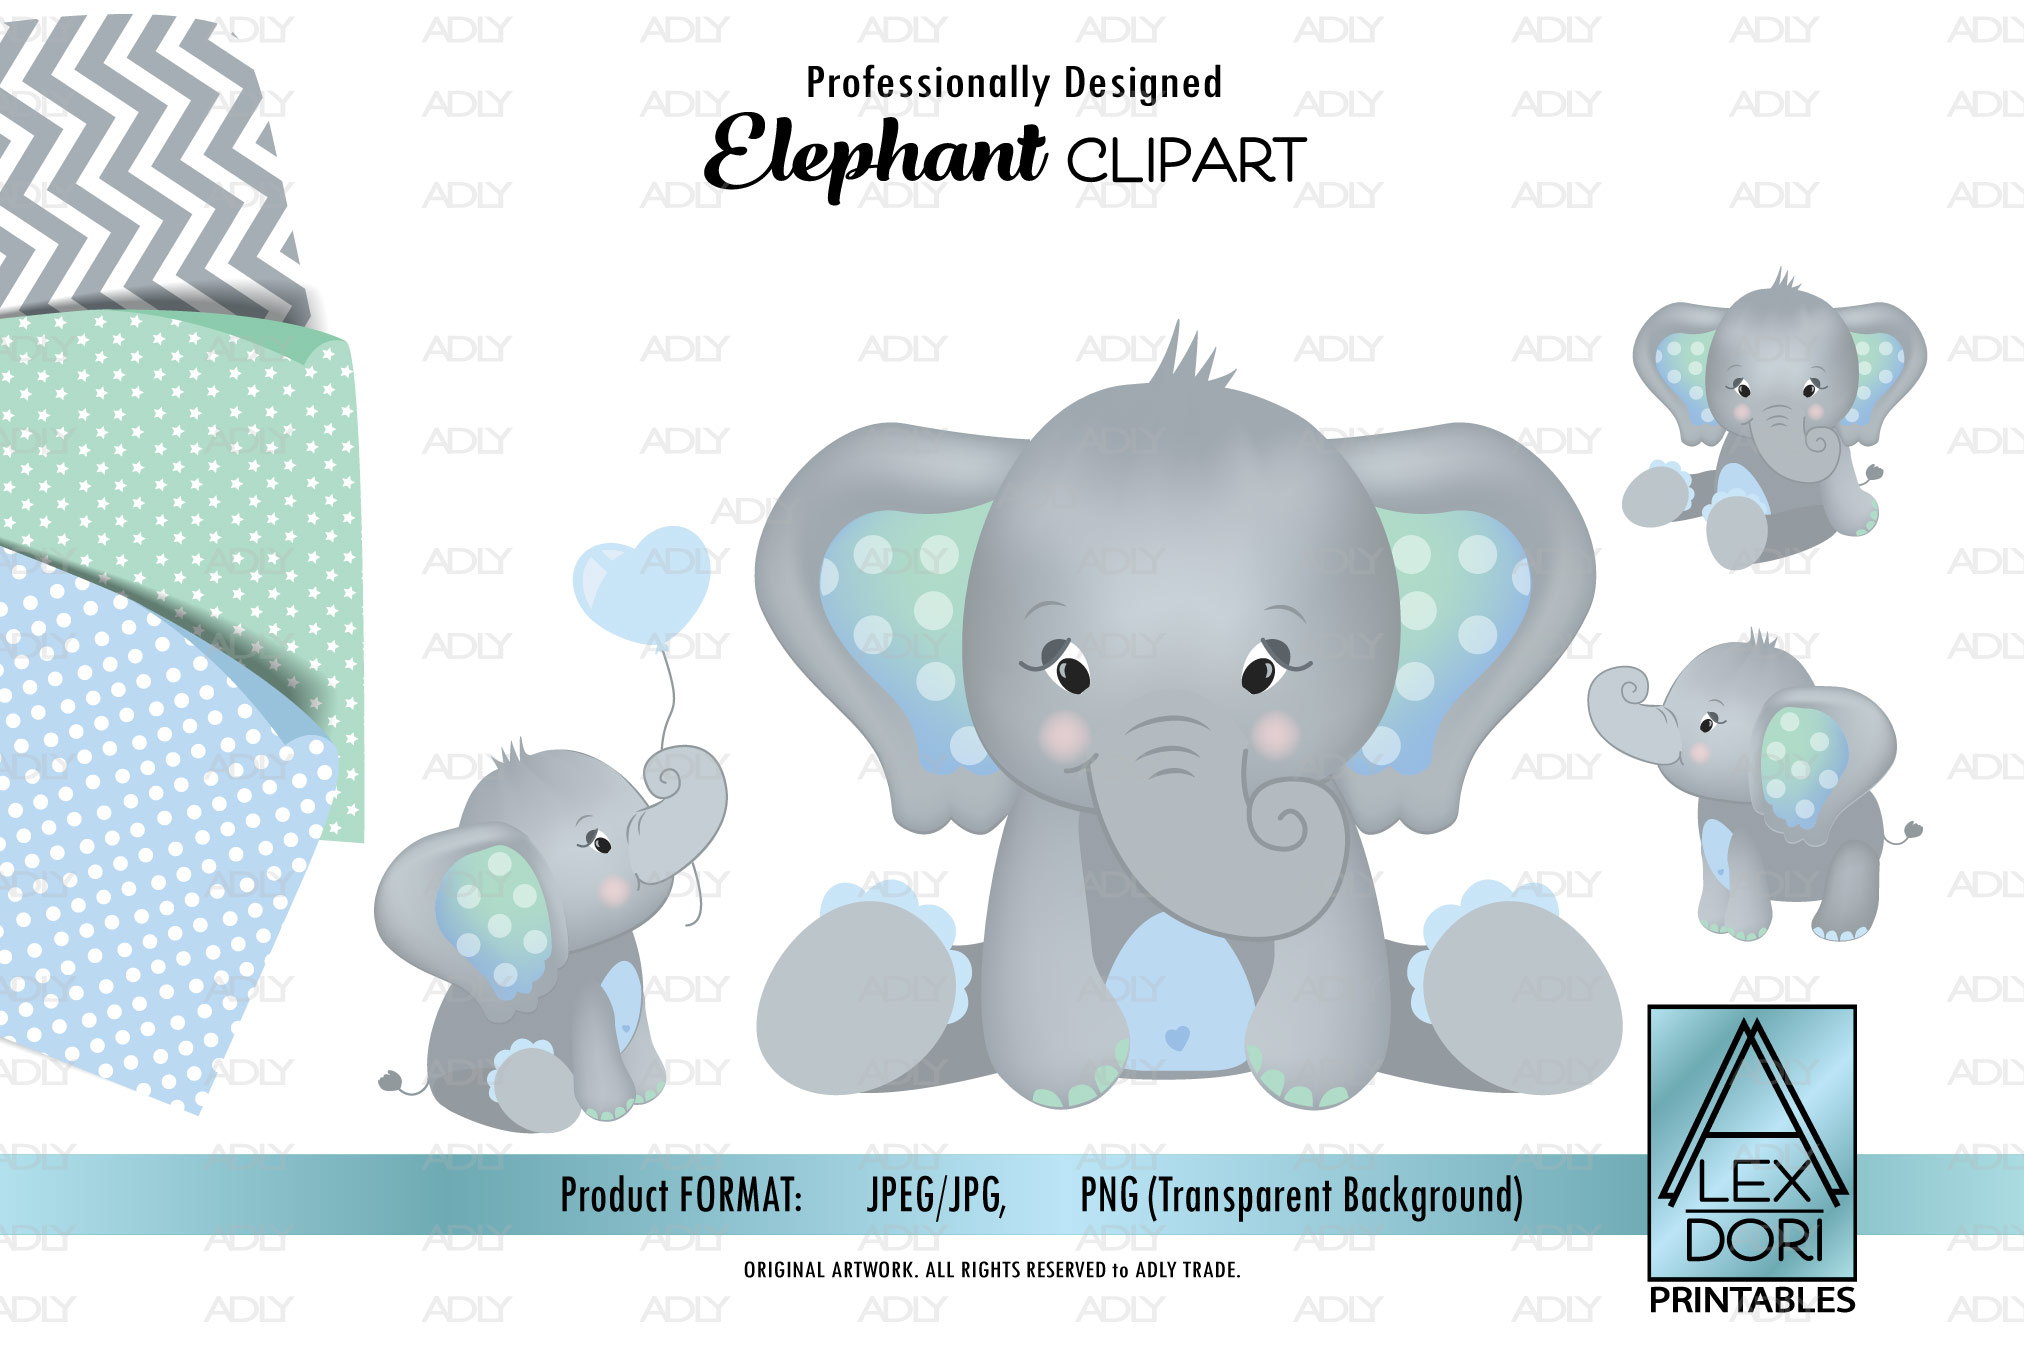 Mint Green Baby Blue Elephant Cliparts, background set.